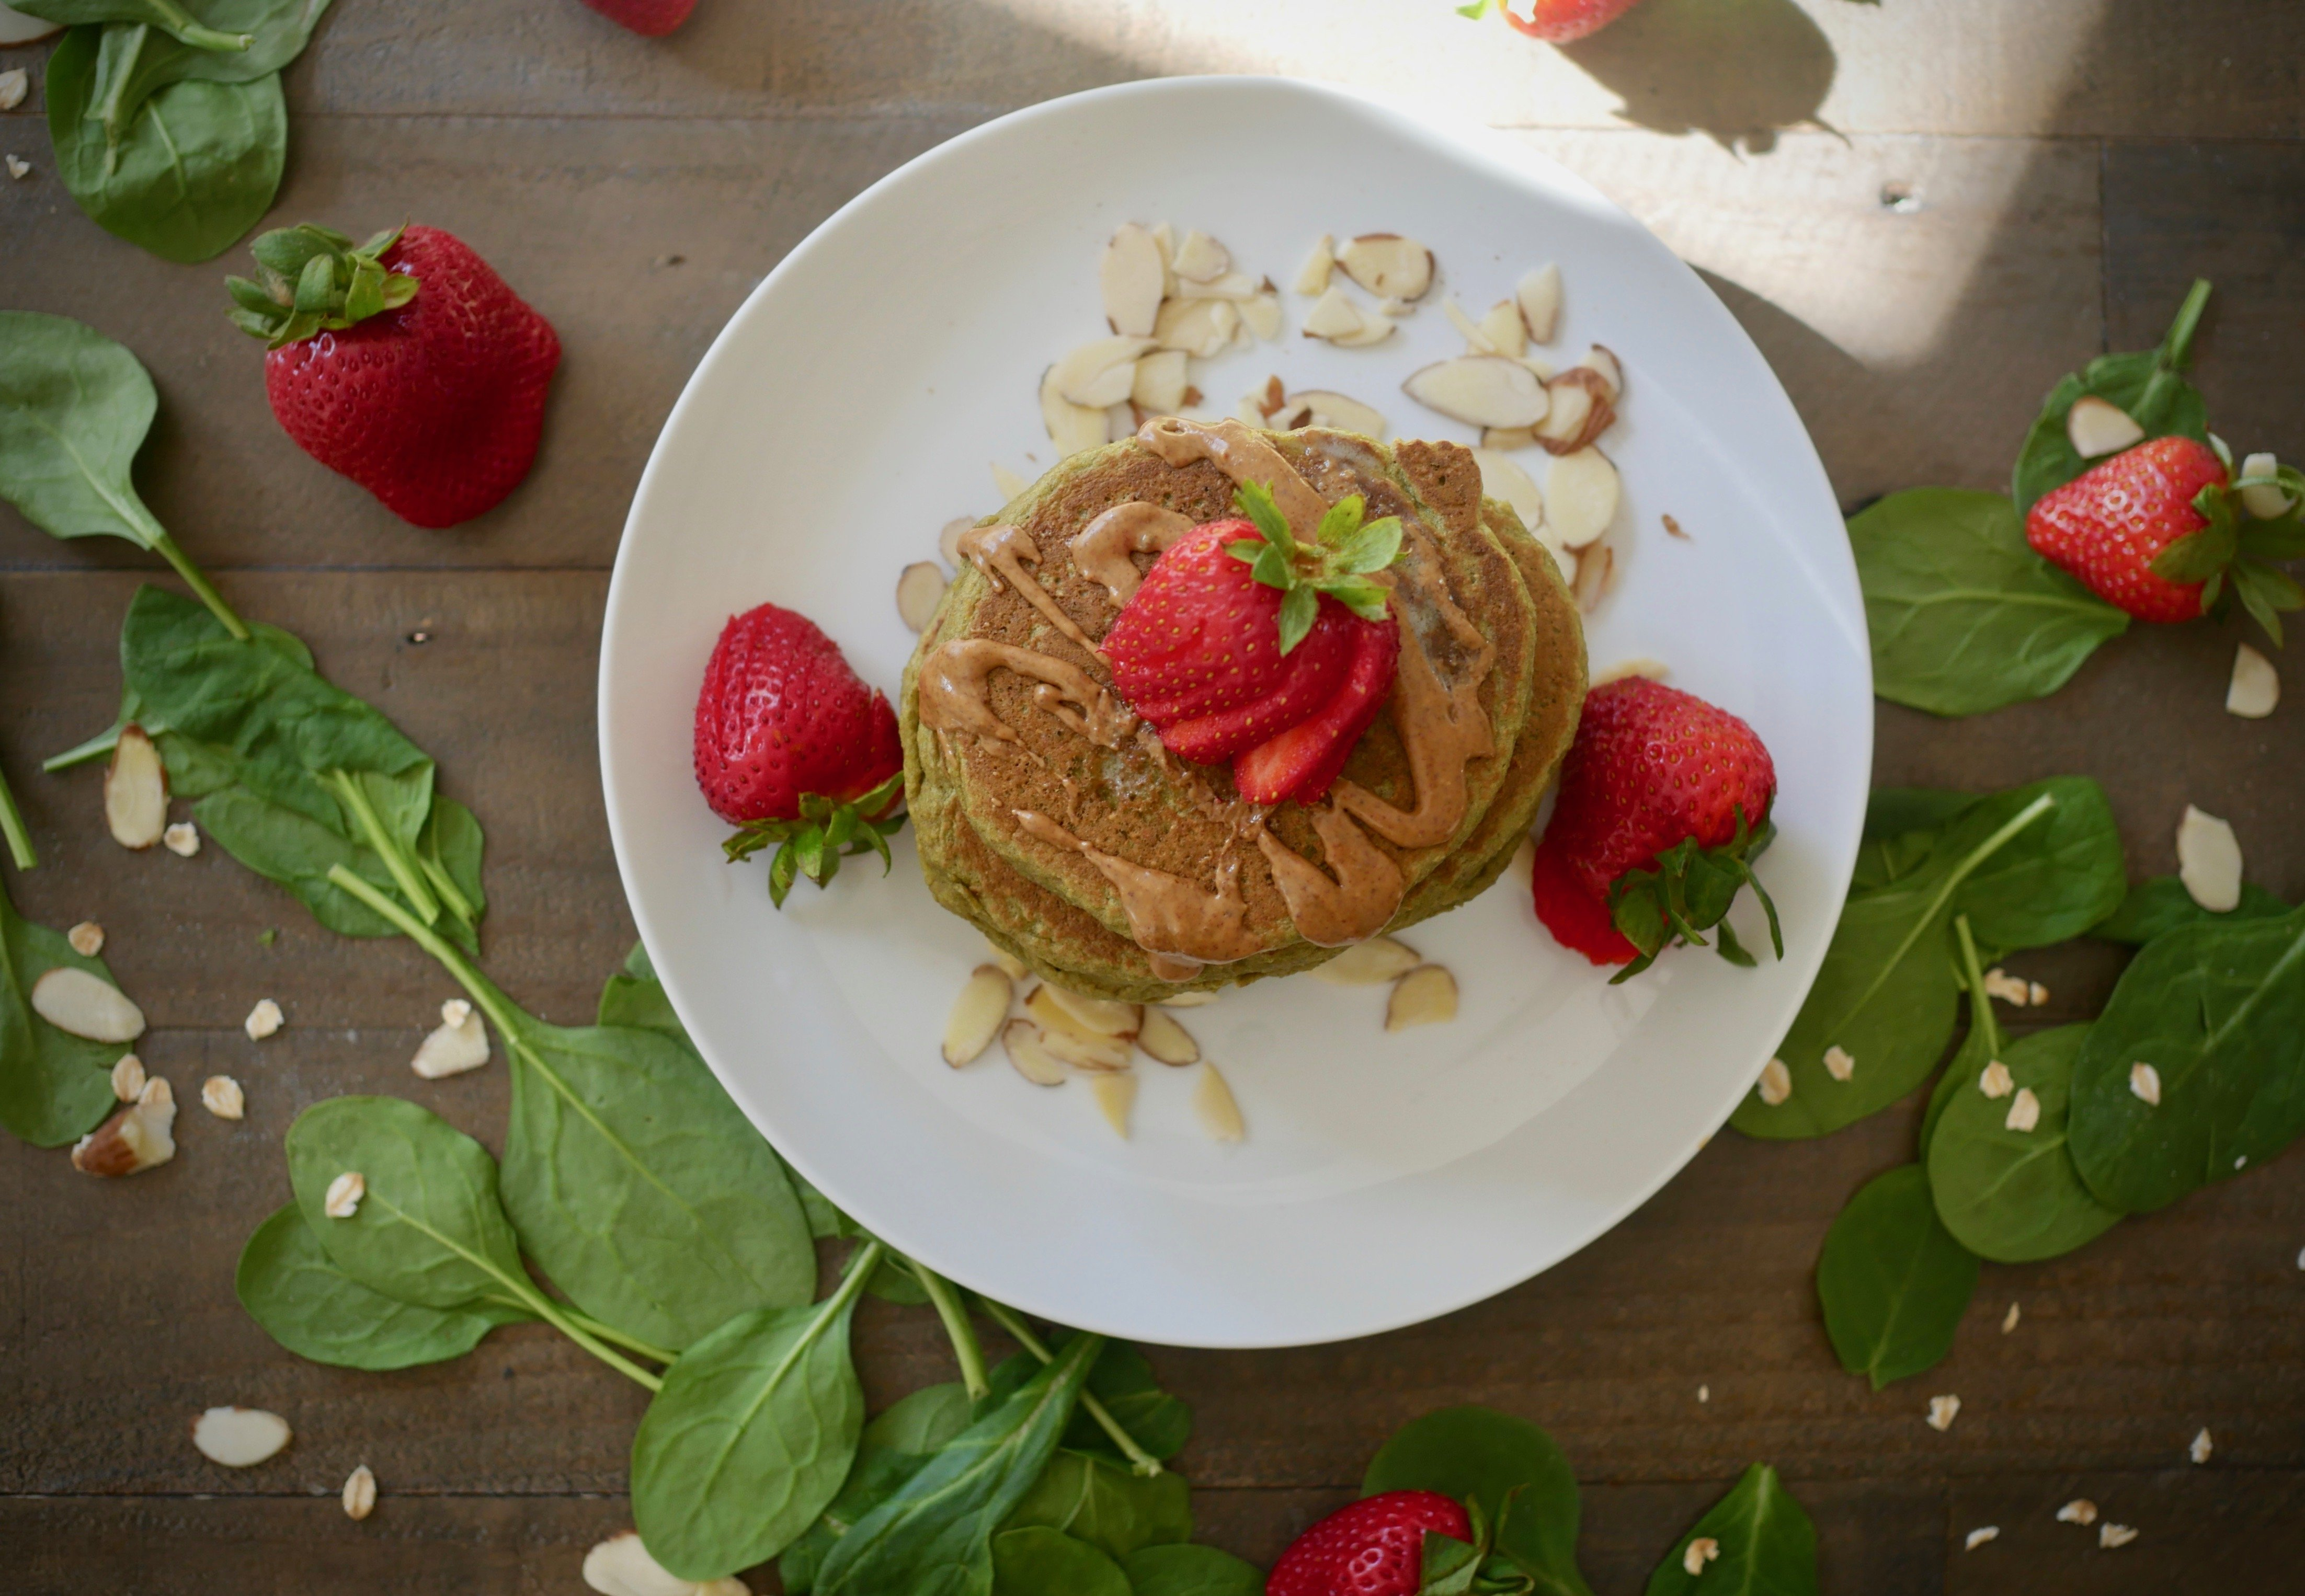 Foodie Friday: Spinach Oatmeal Protein Pancakes